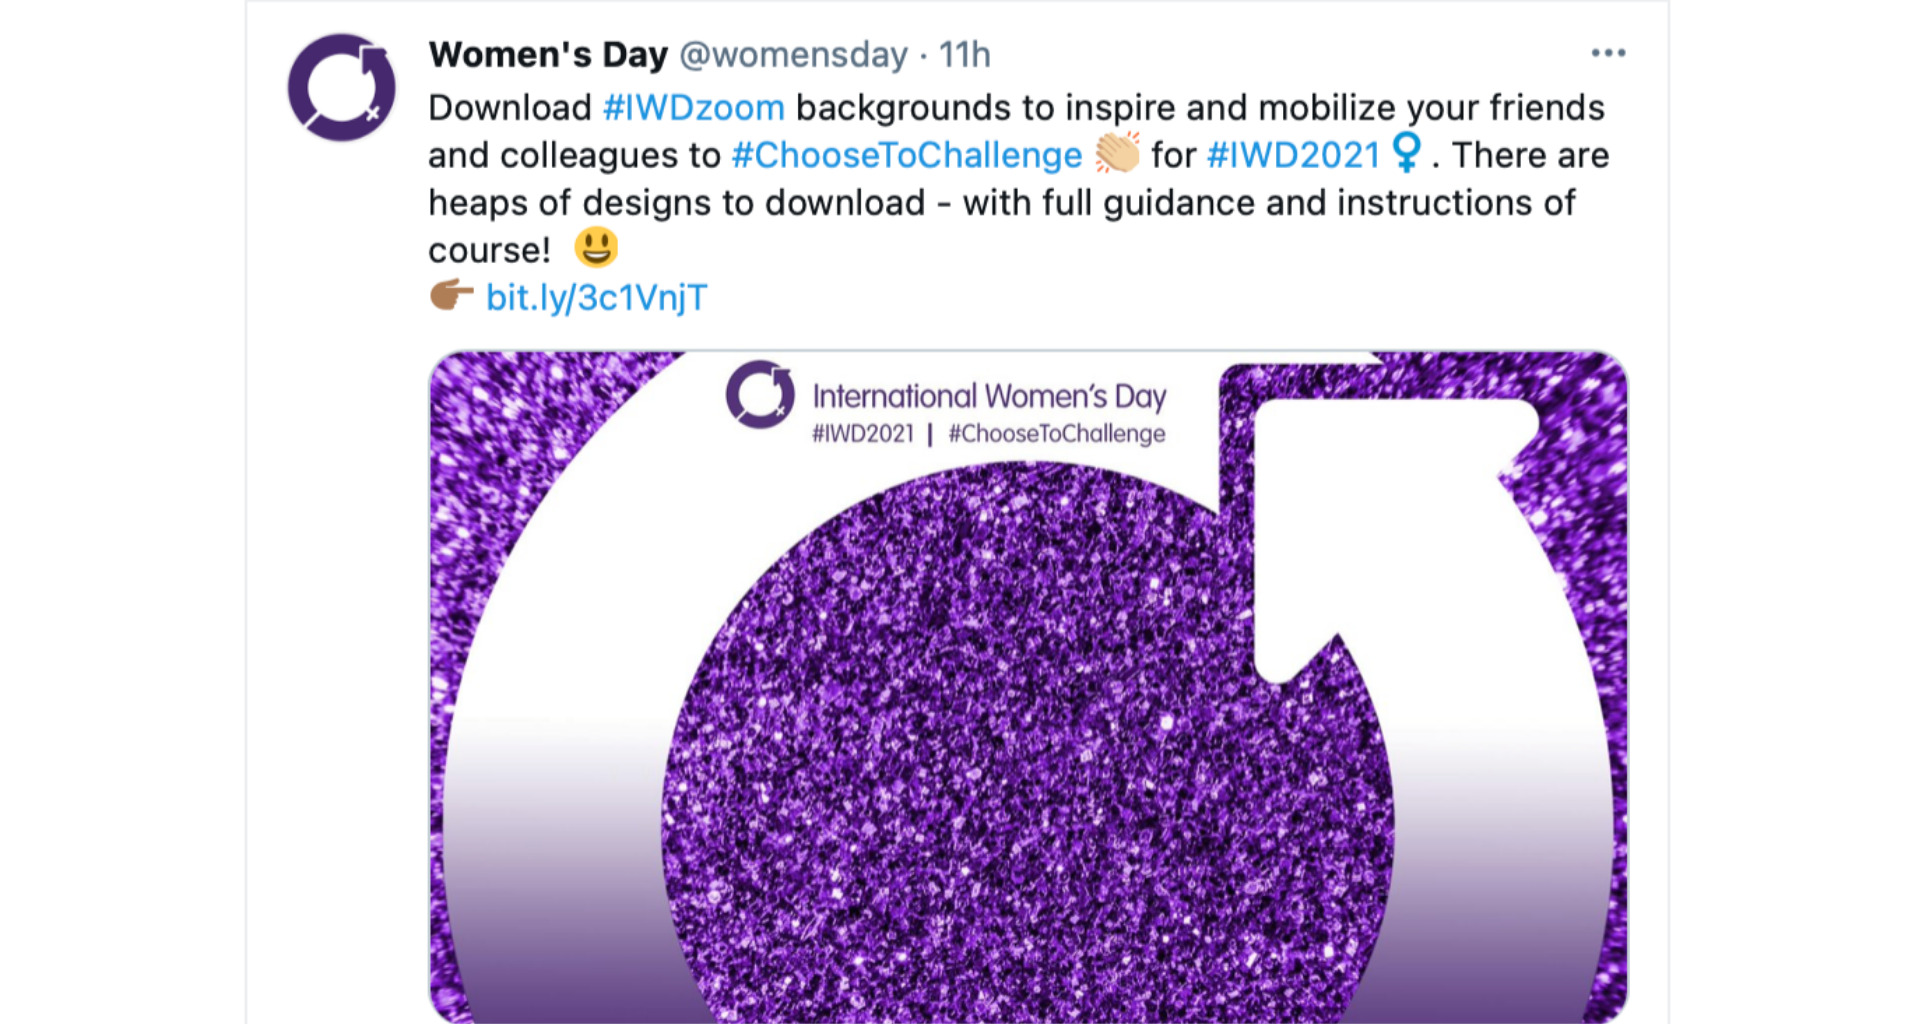 Image of Tweet sharing IWD Zoom background template